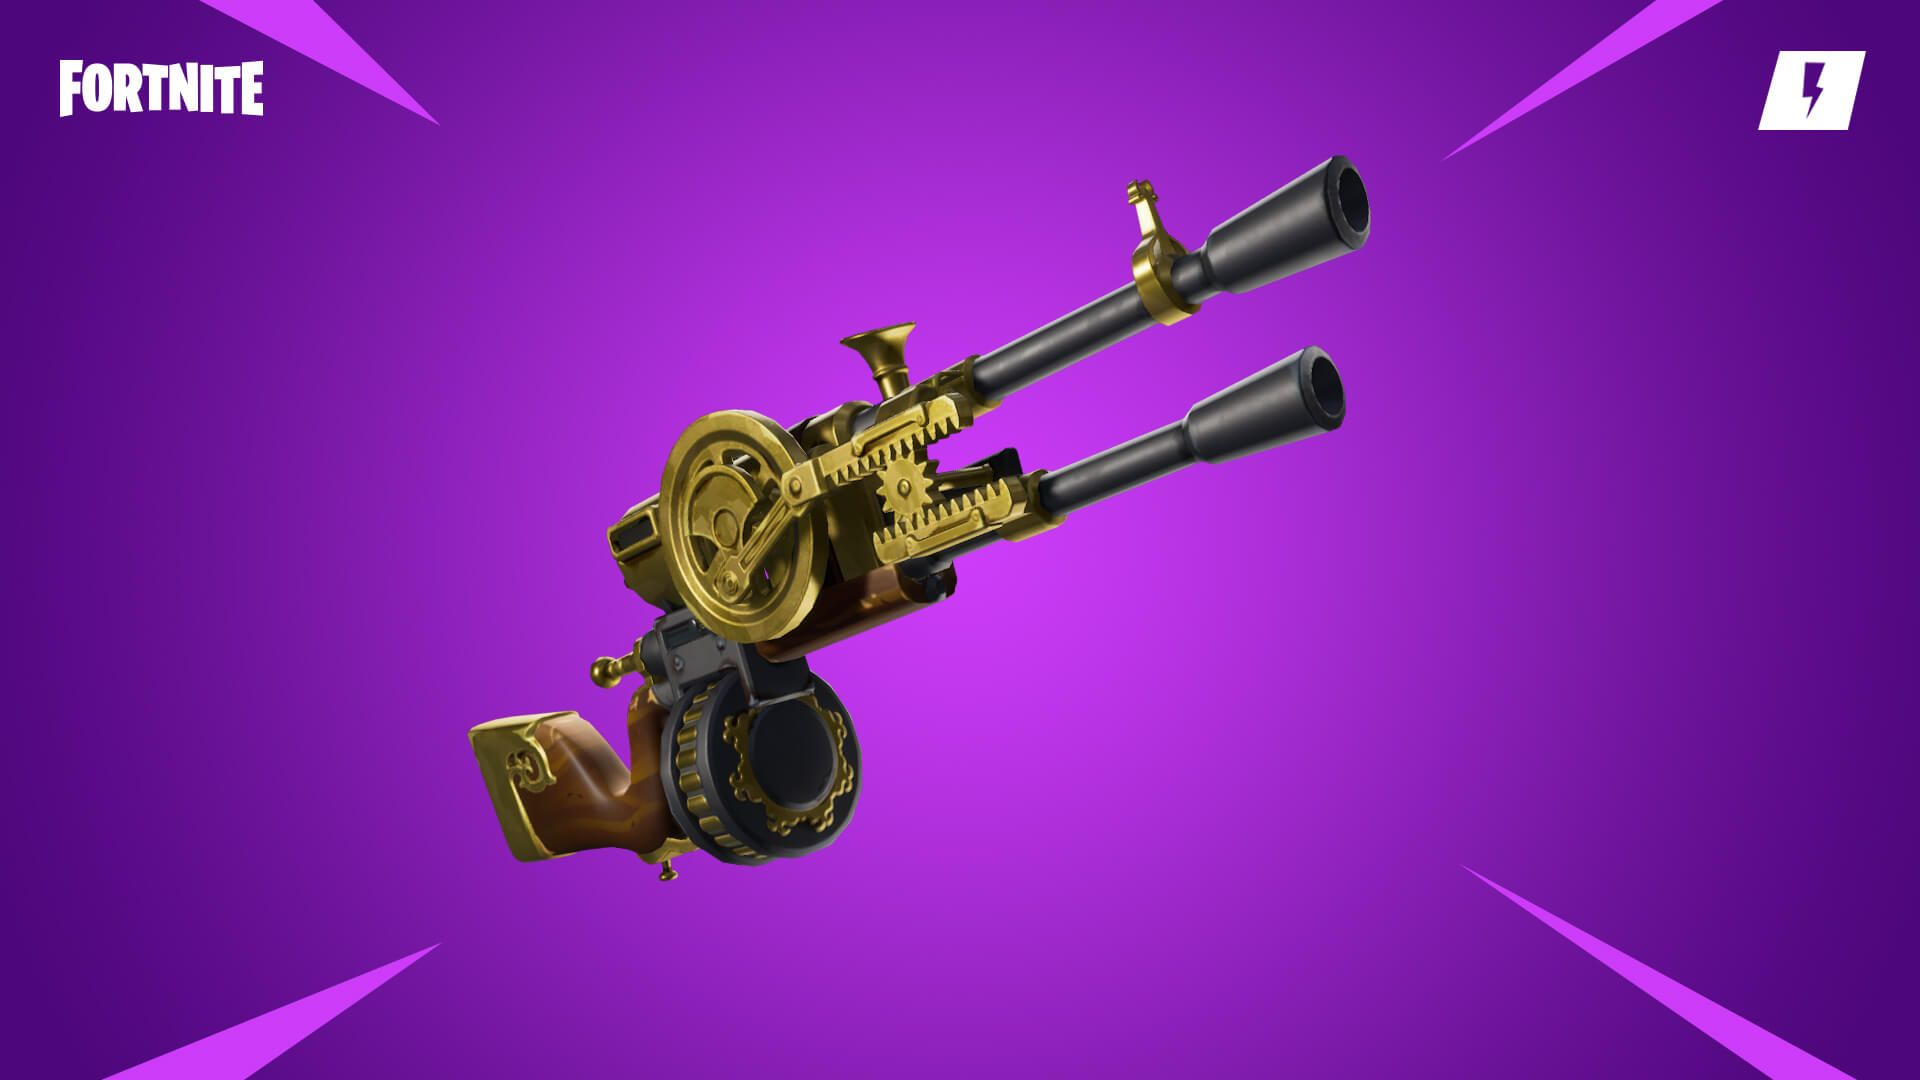 Fortnite Update 8 51 Adds Shadow Bomb Patch Notes The last fortnite update released was v12.60 update. fortnite update 8 51 adds shadow bomb